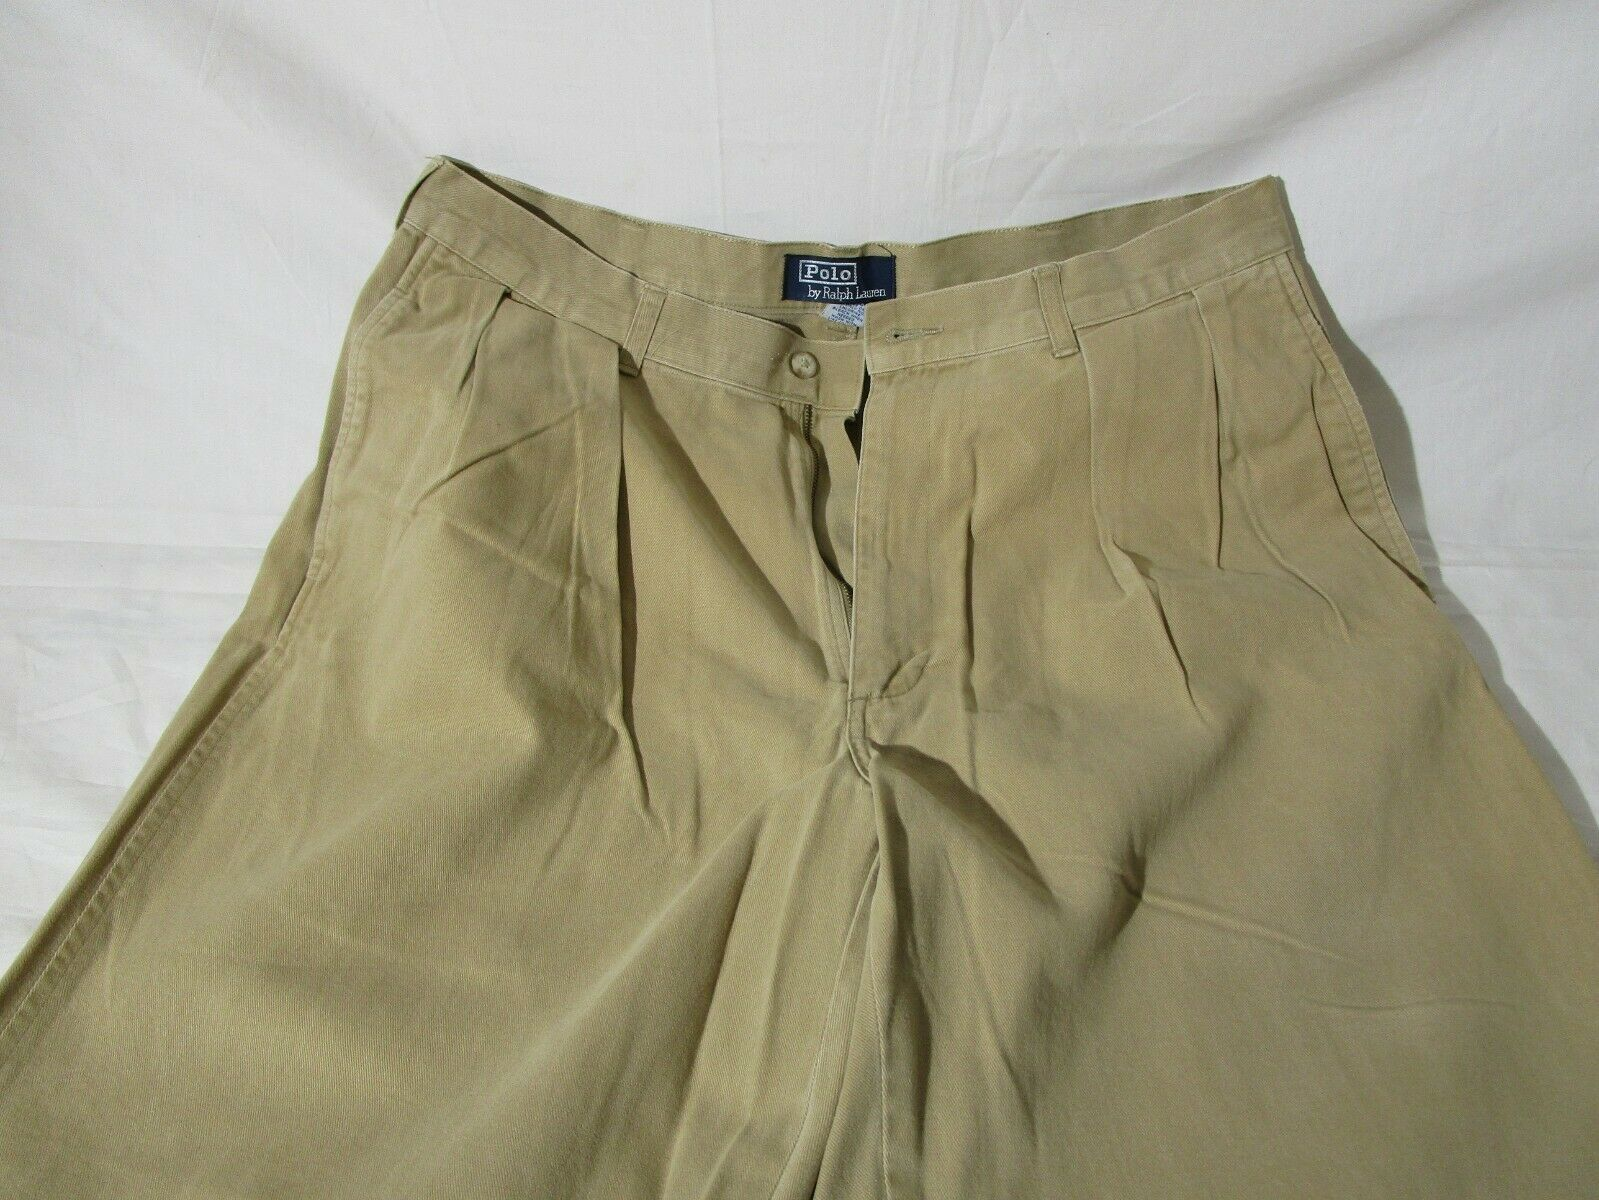 VINTAGE 90'S MEN'S POLO BY RALPH LAUREN CHINO DRE… - image 2